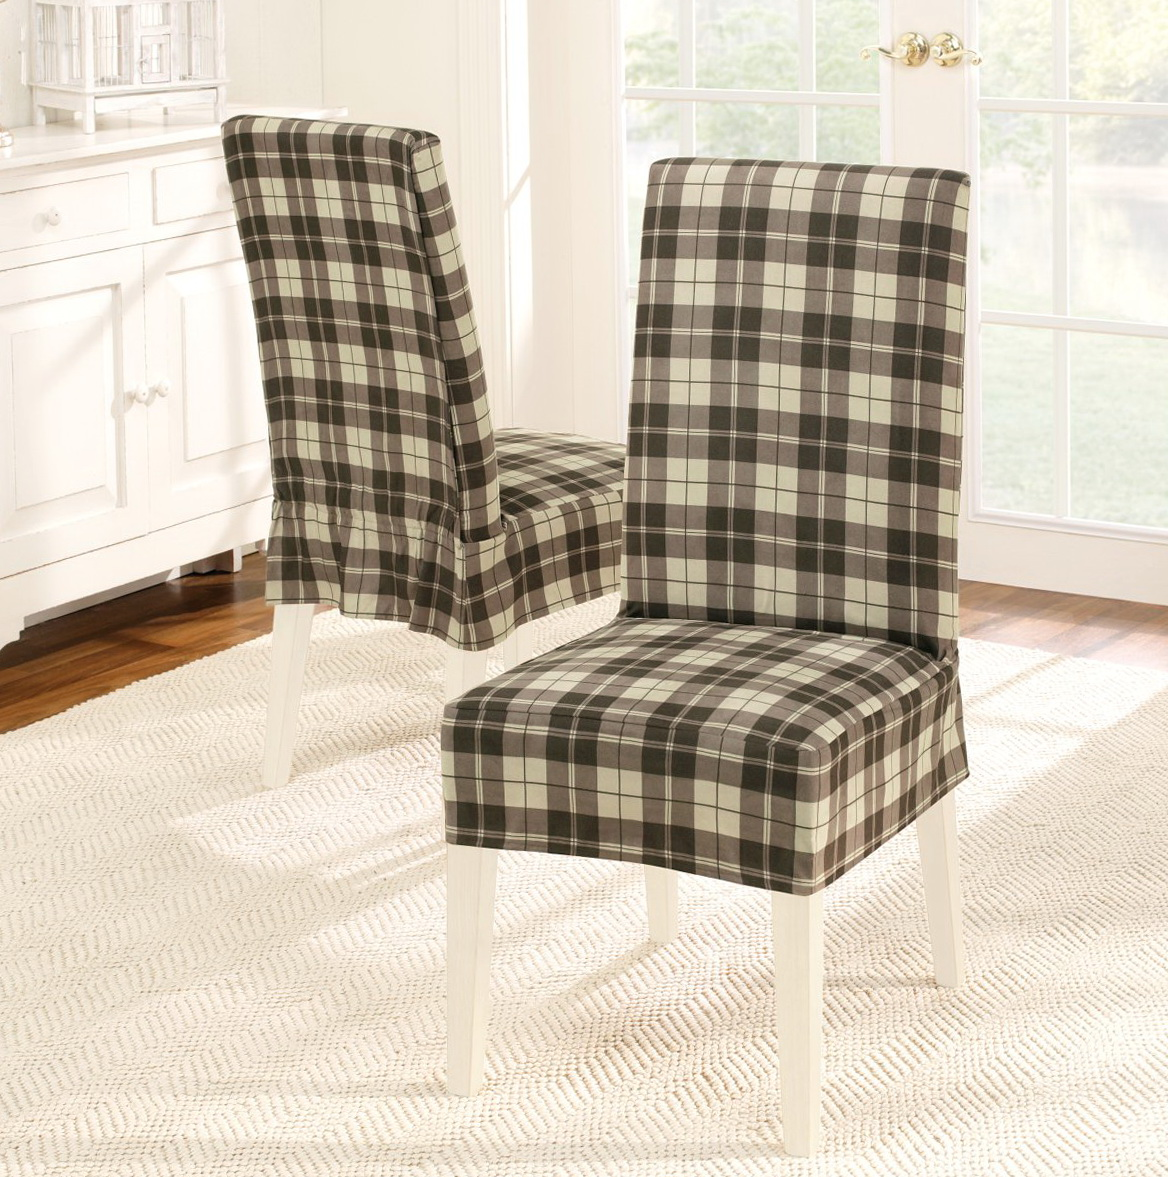 seat cushion covers for dining chairs home design ideas